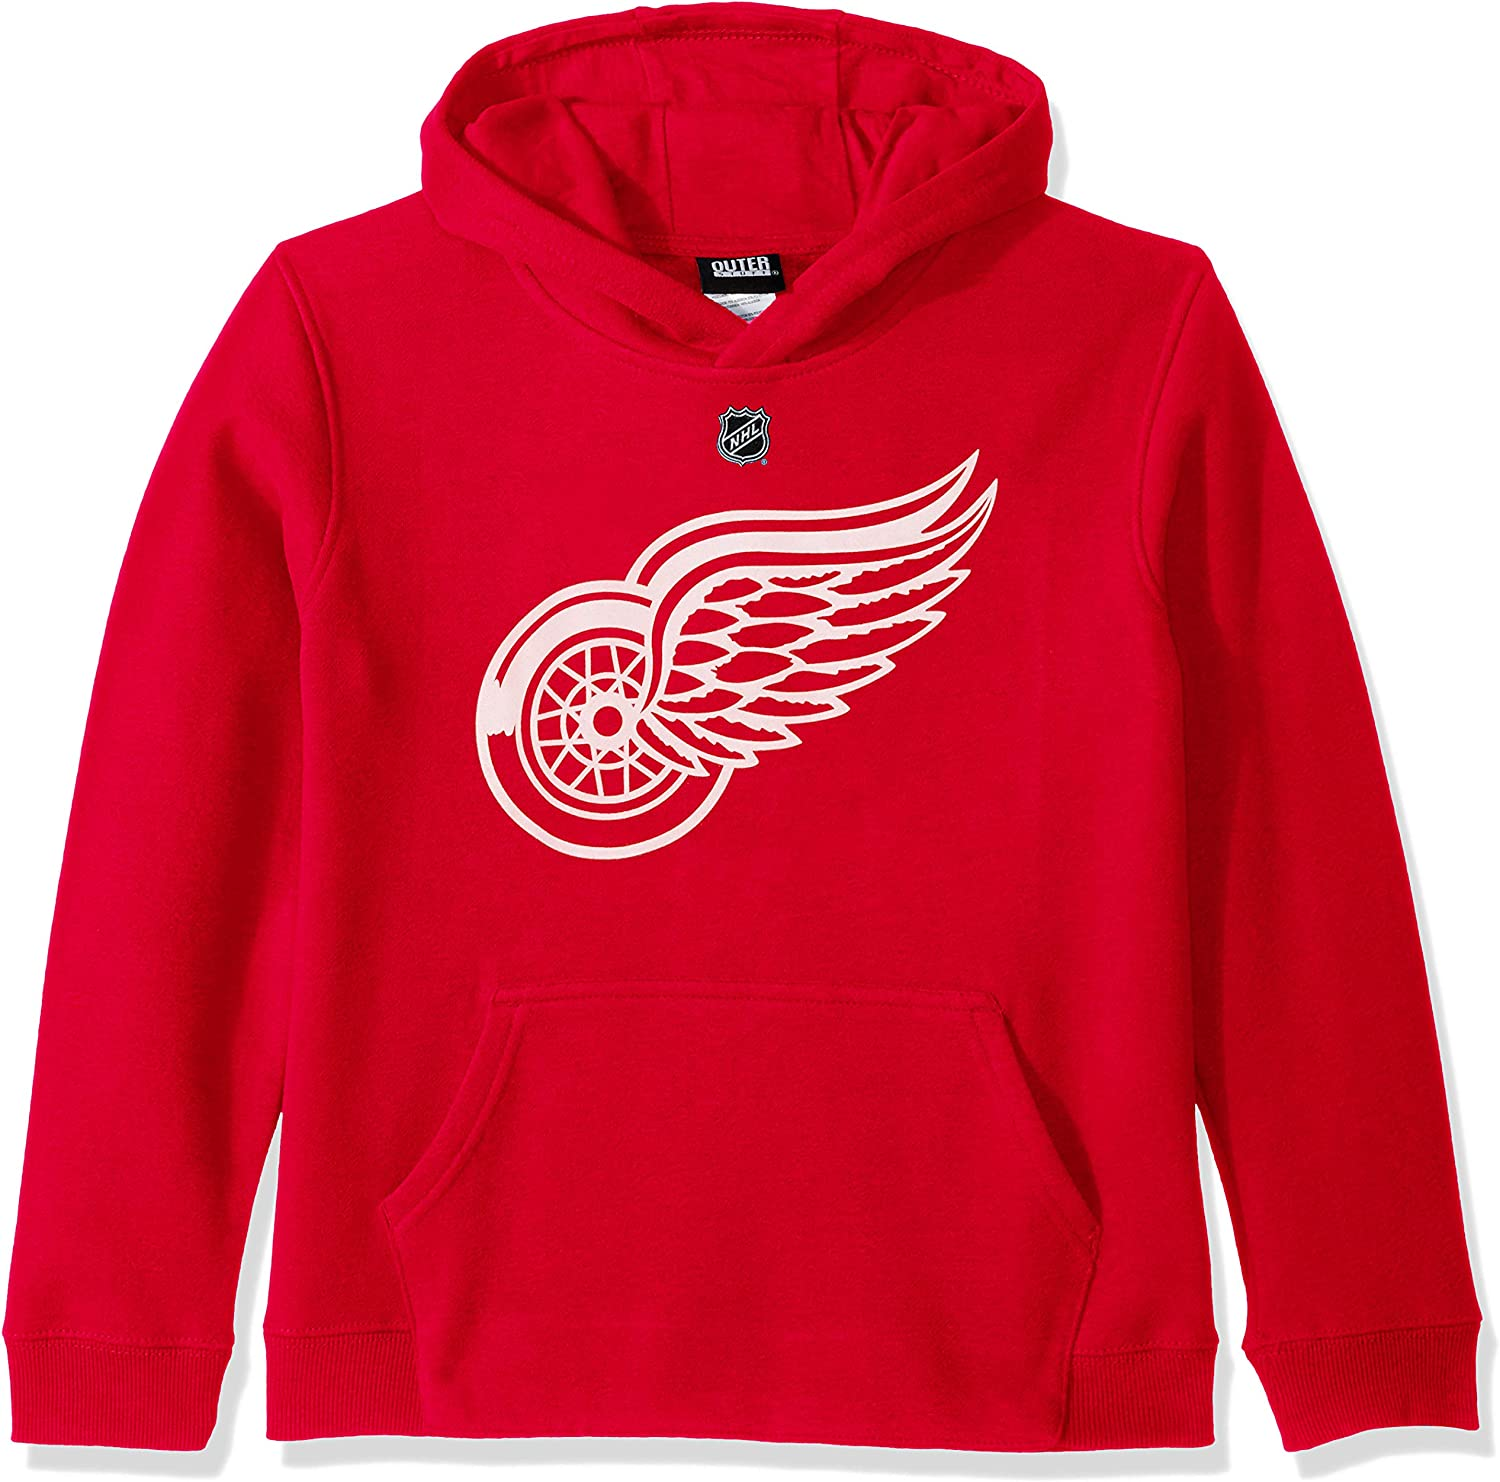 Youth Small 8 Red NHL by Outerstuff NHL Detroit Red Wings Youth Boys Primary Logo Fleece Hoodie